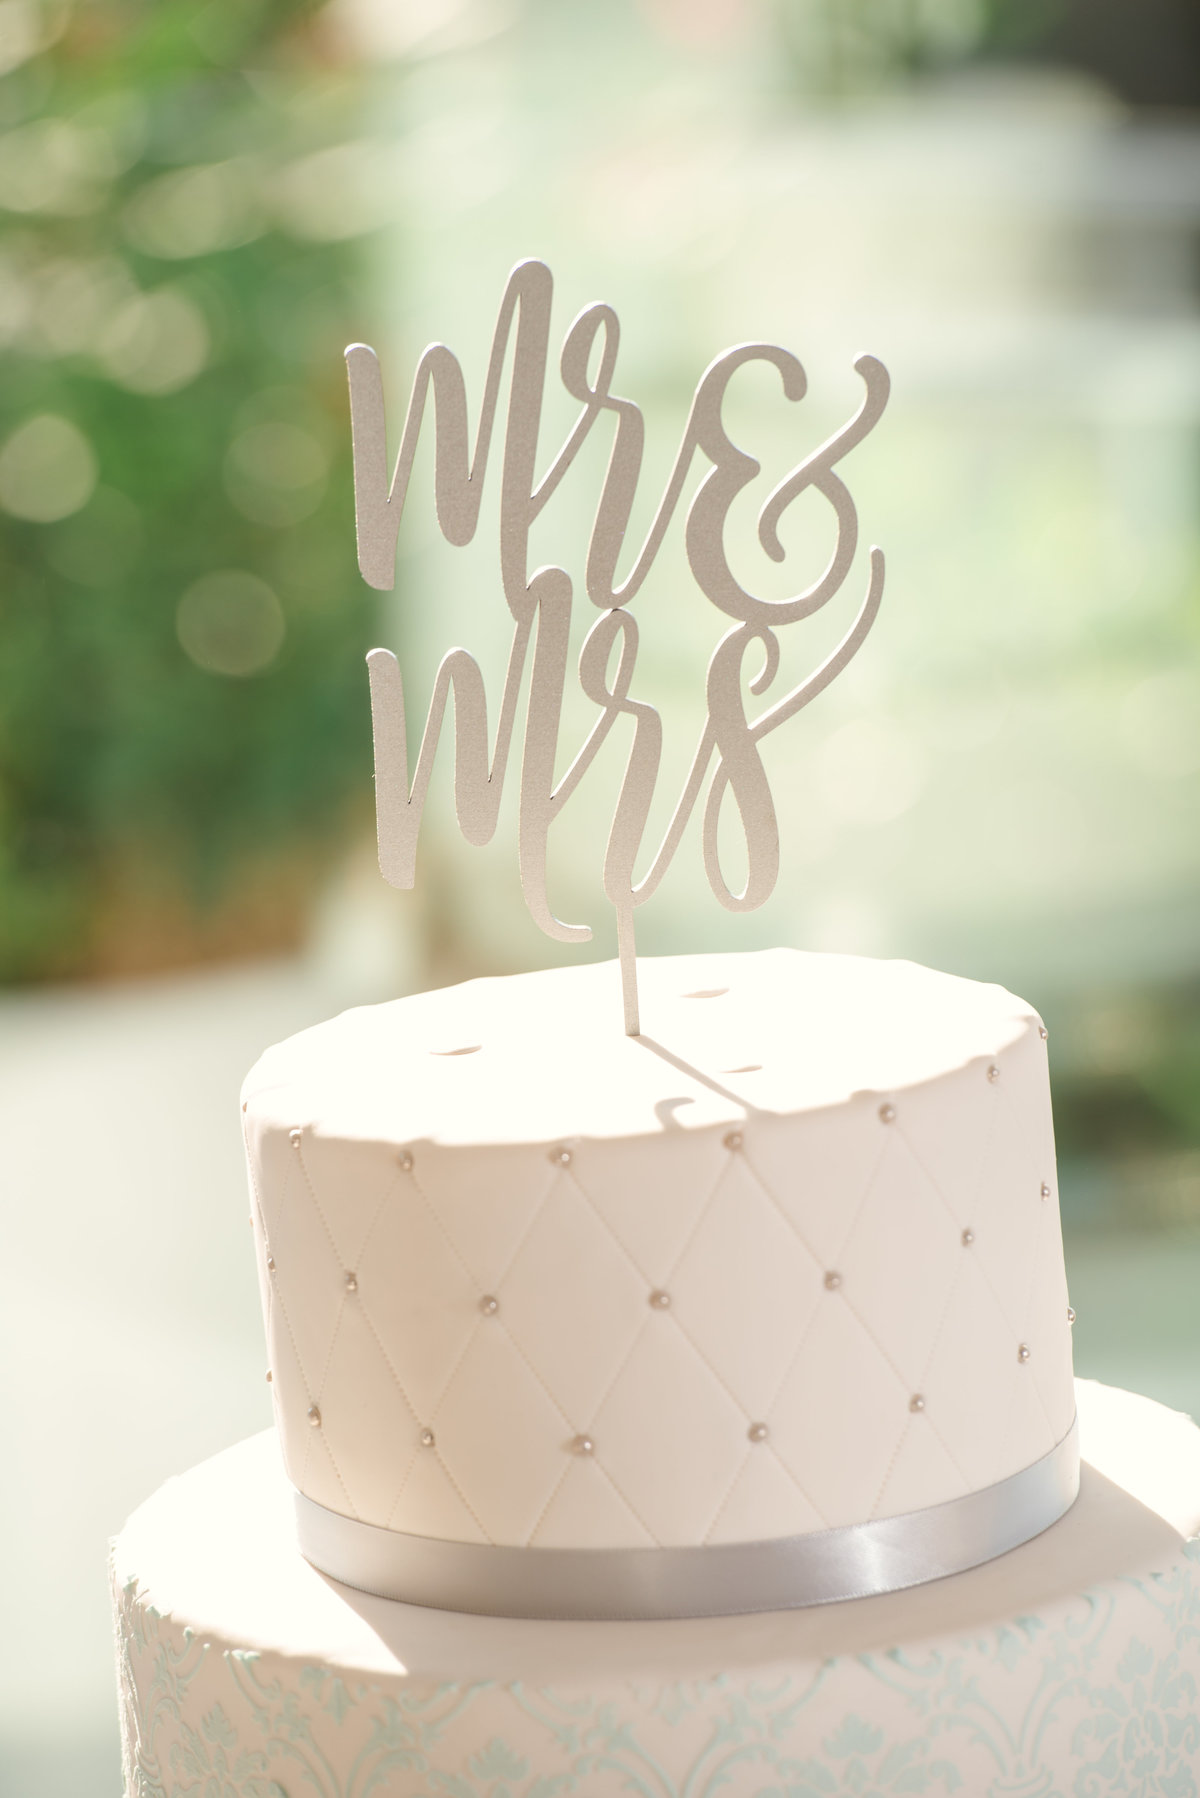 Mr and Mrs cake topped